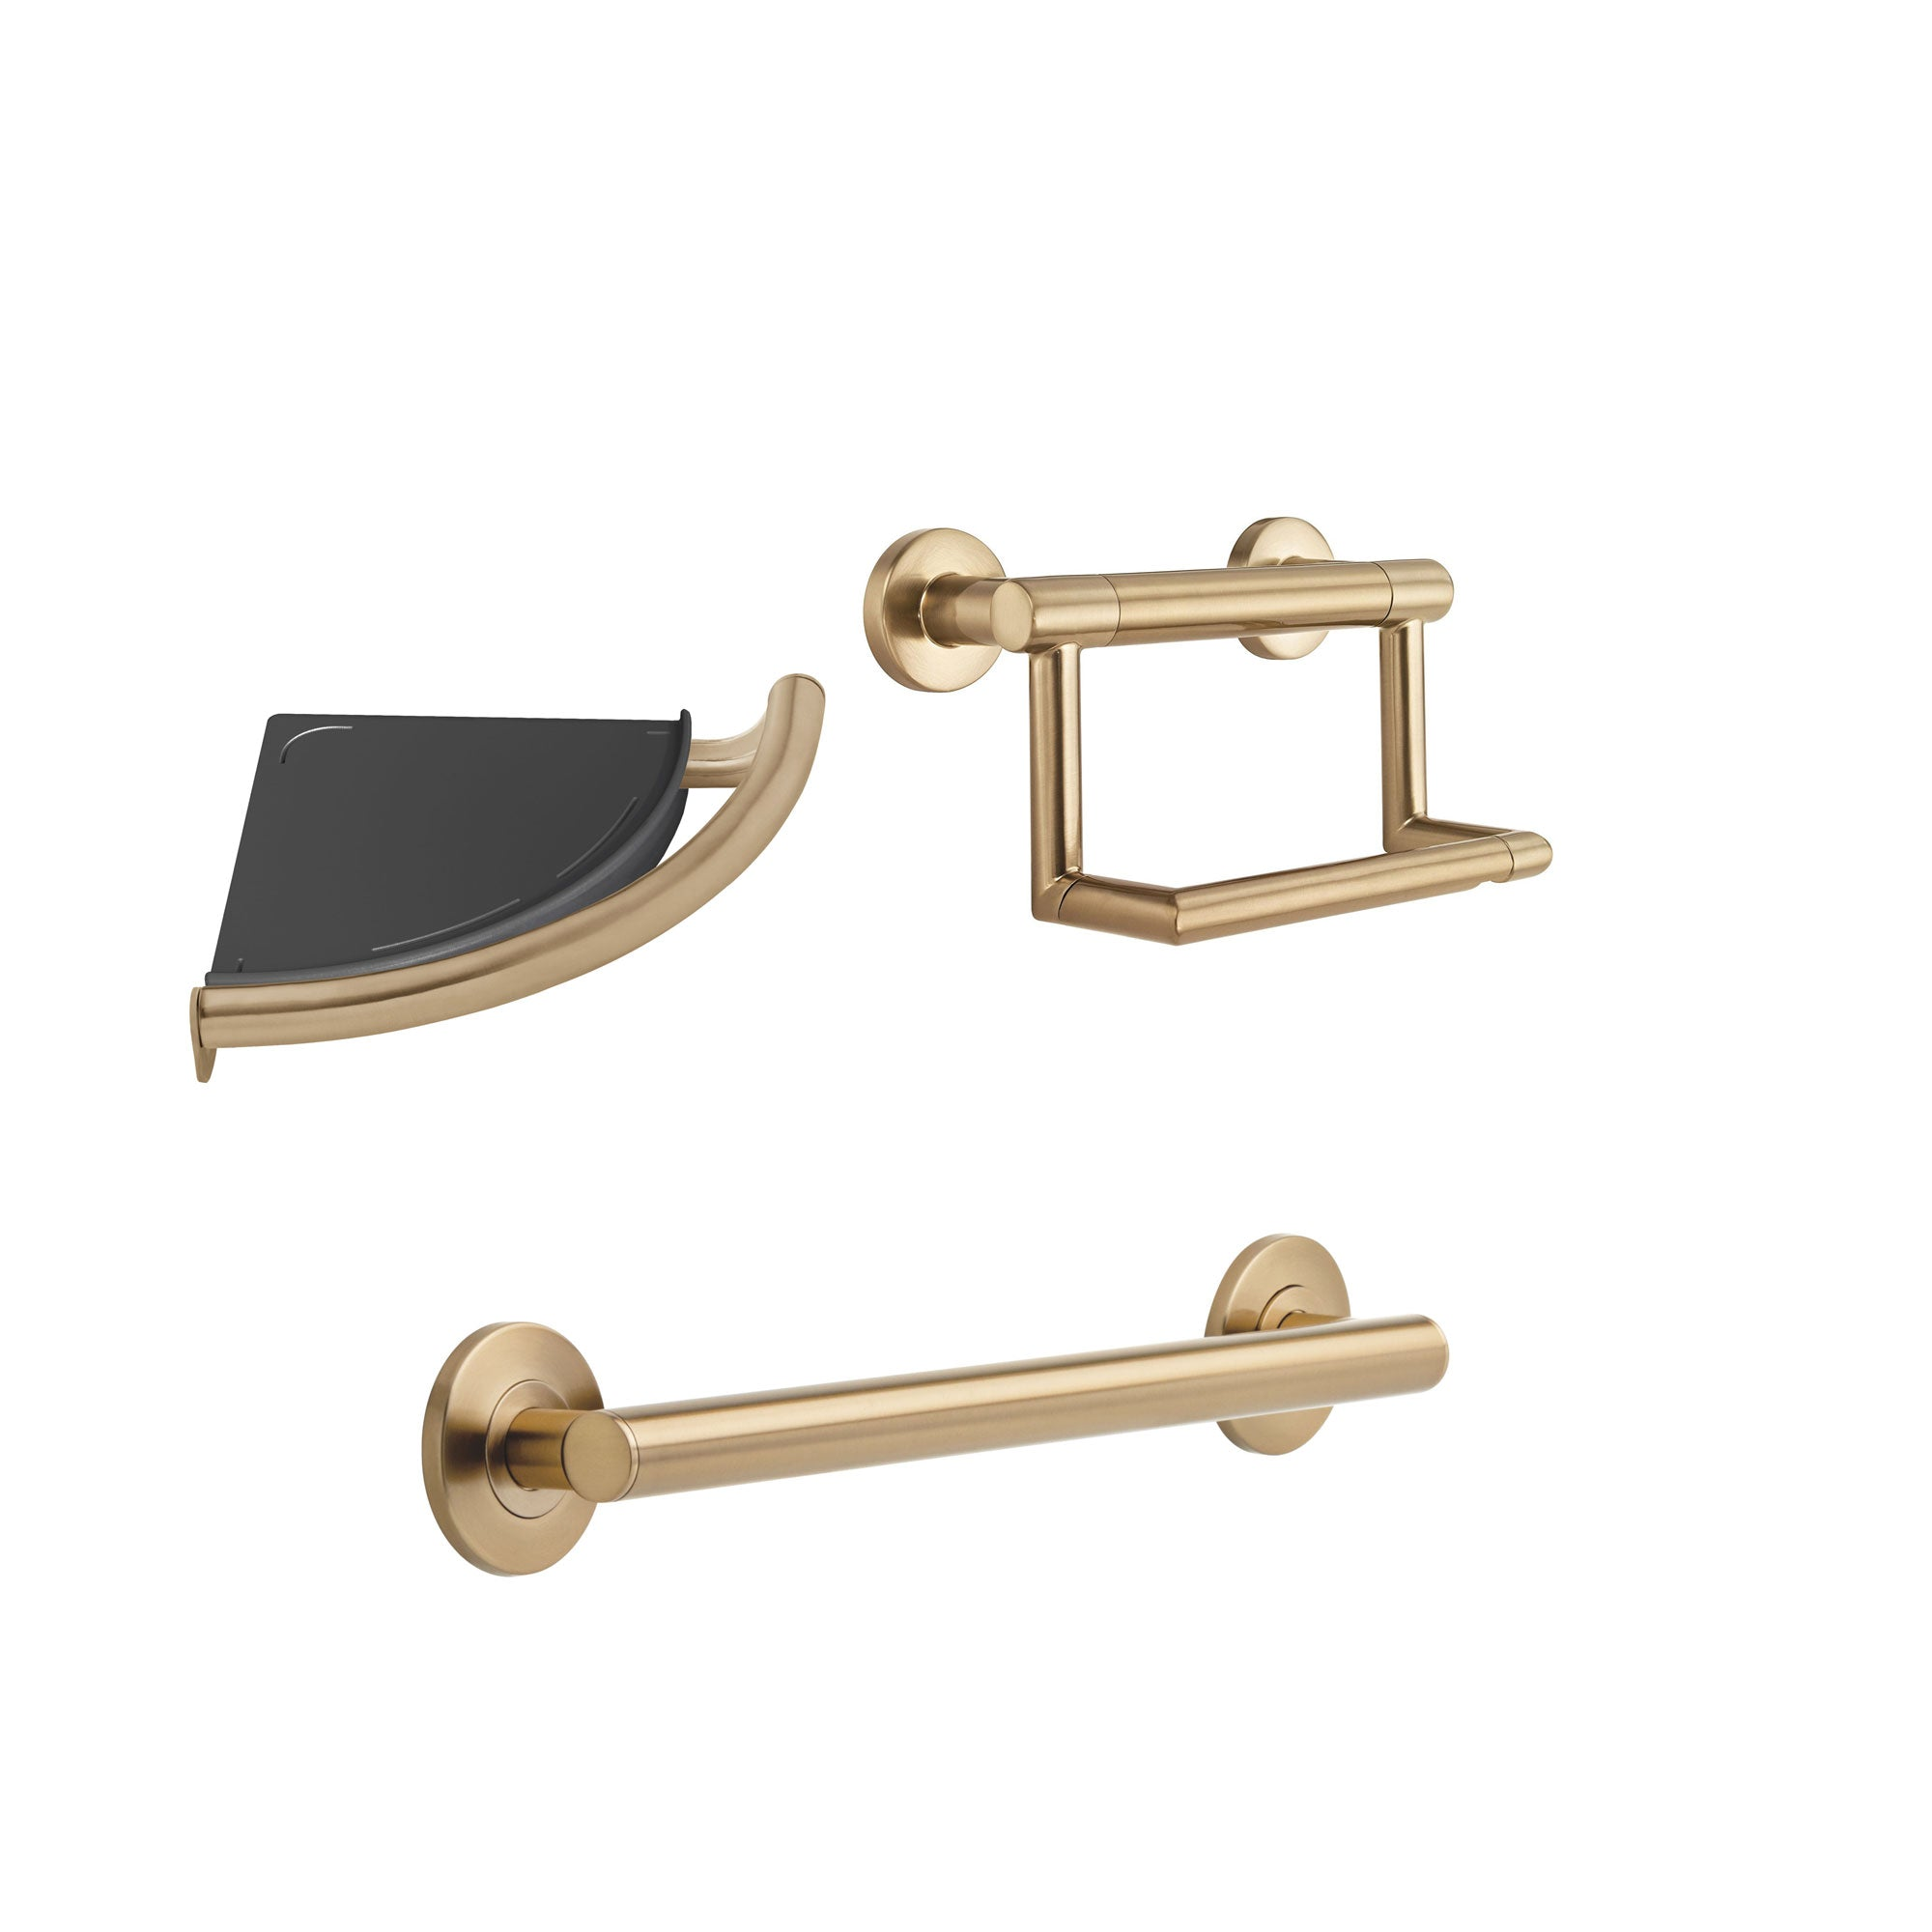 "Delta Bath Safety Champagne Bronze BASICS Bathroom Accessory Set Includes: 18"" Grab Bar, Corner Shower Shelf, TP Holder w/ Assist Grab Bar D10110AP"